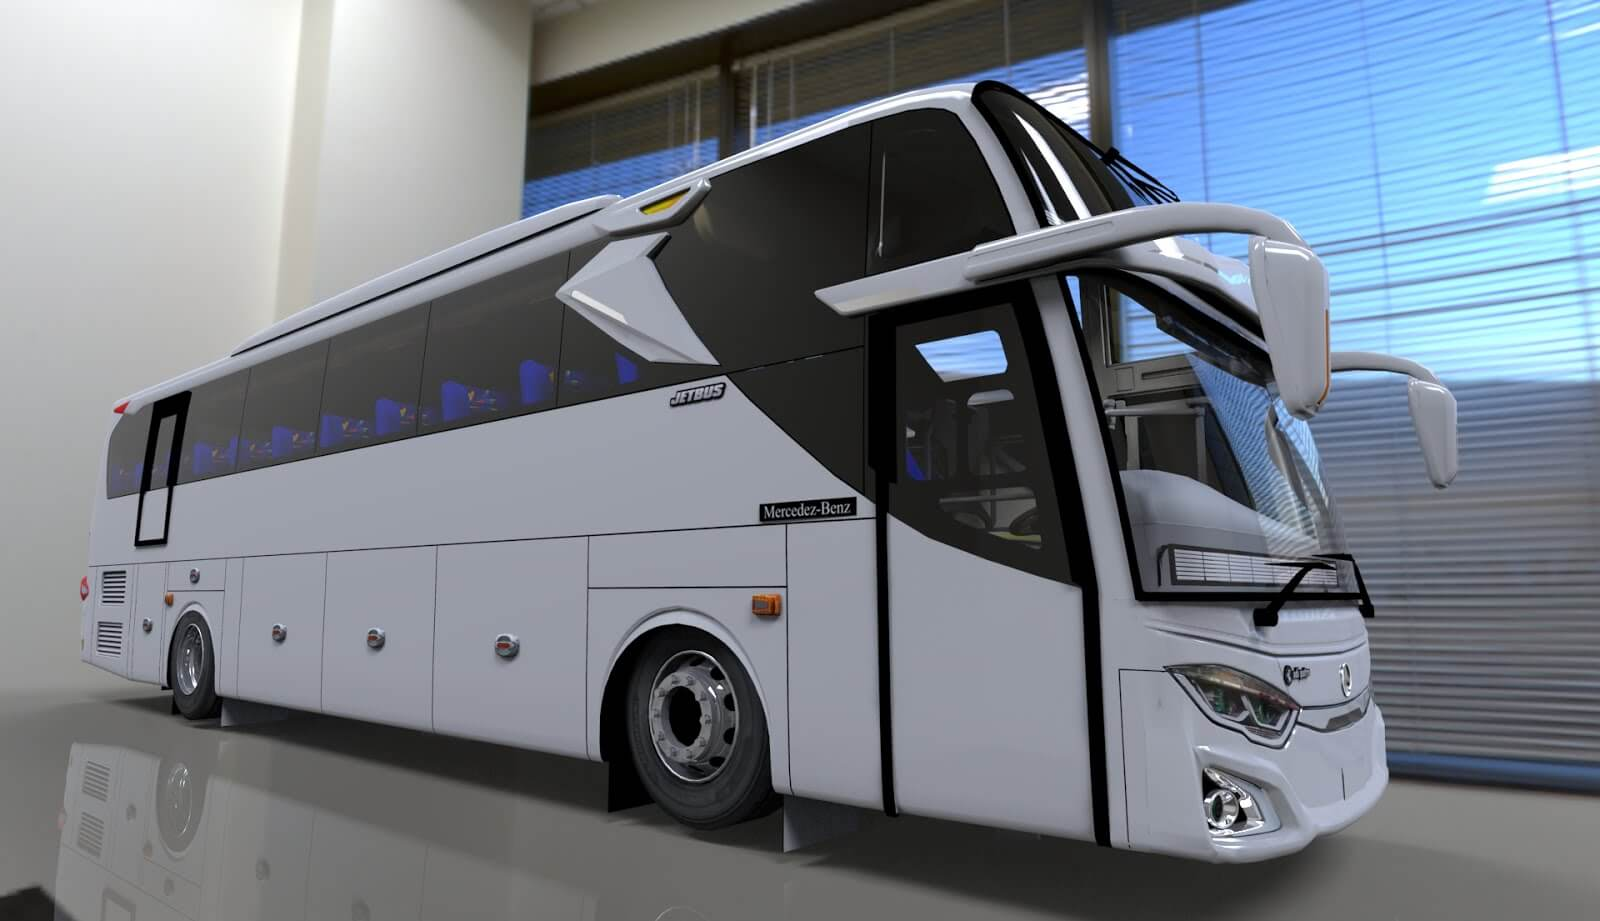 Download JetBus 3+ MHD Voyager Mod for Bus Simulator Indonesia, JetBus 3+ MHD Voyager, JB SDD 3+ Voyager, JetBus 3+ MHD Voyager, JetBus 3+ MHD Voyager Mod, JetBus 3+ MHD Voyager Mod for BUSSID, JetBus 3+ Voyager Mod, JetBus 3+ Voyager Mod for BUSSID, JETBUS SDD 3+ VOYAGER, JETBUS SDD 3+ VOYAGER Mod for BUSSID, JetBus3+, MD Creation, SGCArena, ZTOM